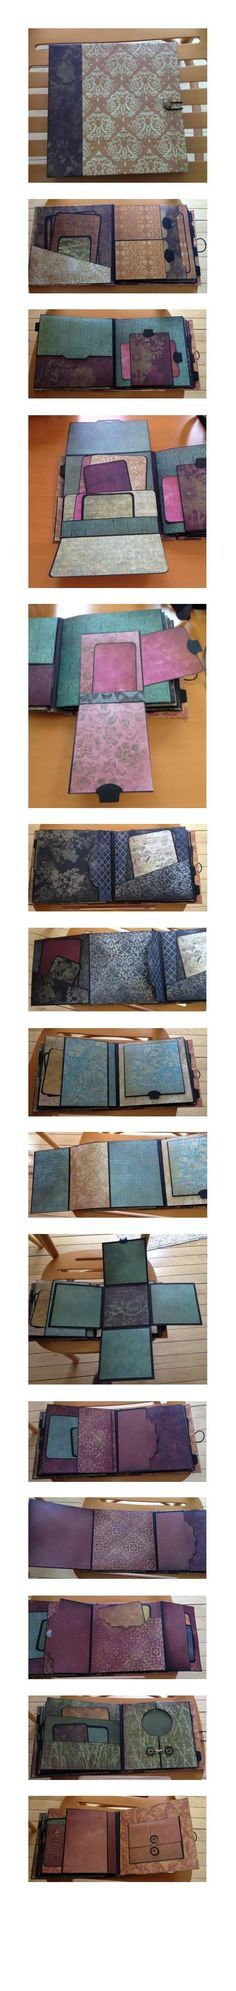 "8 x 8 mini album - inspired by many but especially Kona Raven; using the Paper Studio ""Tattered and Worn"" papers"